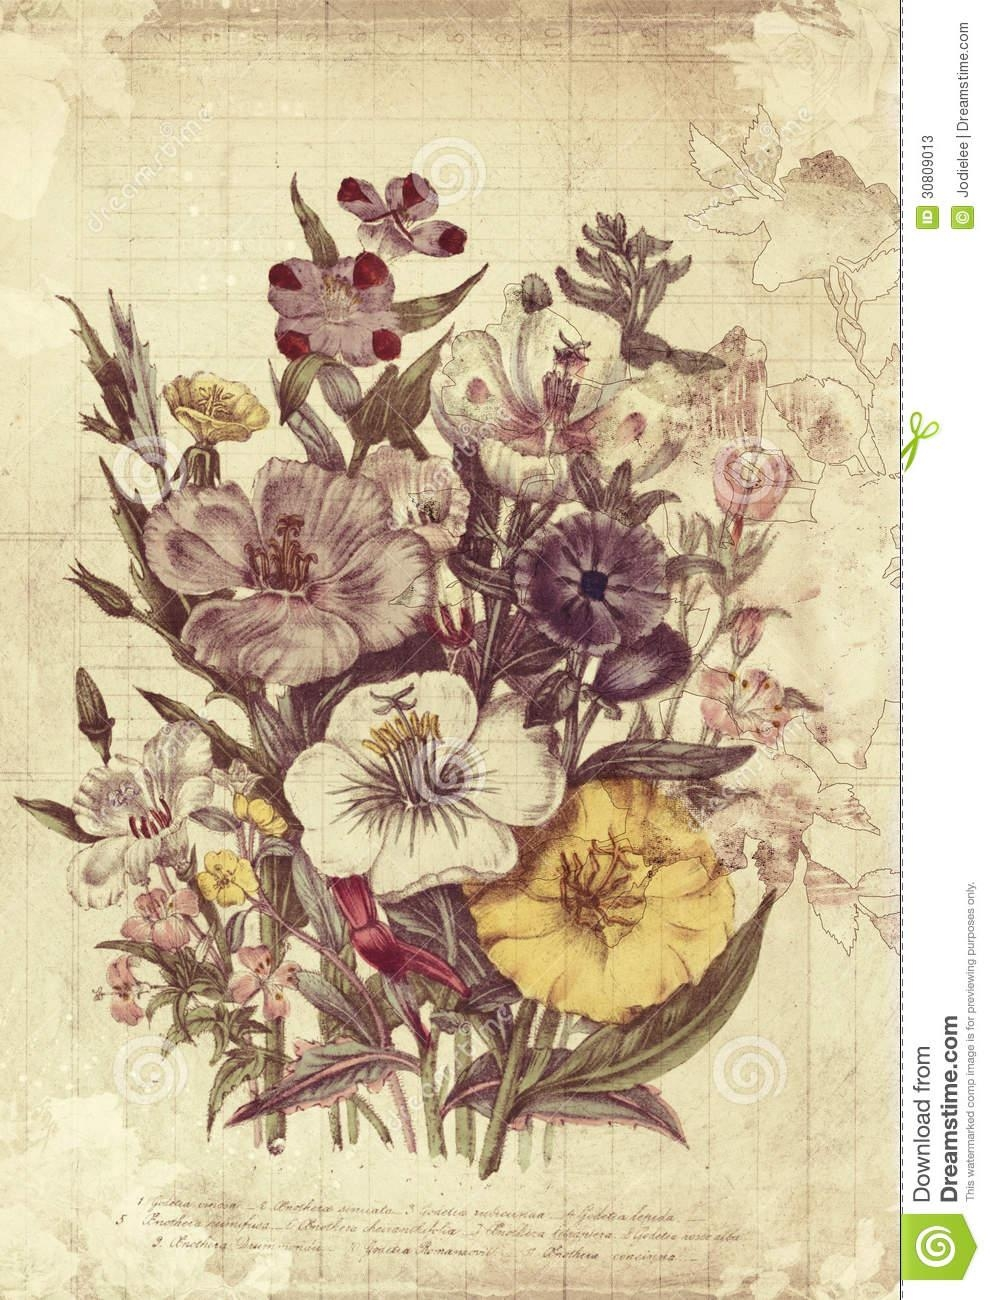 Flowers Botanical Vintage Style Wall Art With Textured Background Pertaining To Vintage Style Wall Art (Image 8 of 20)